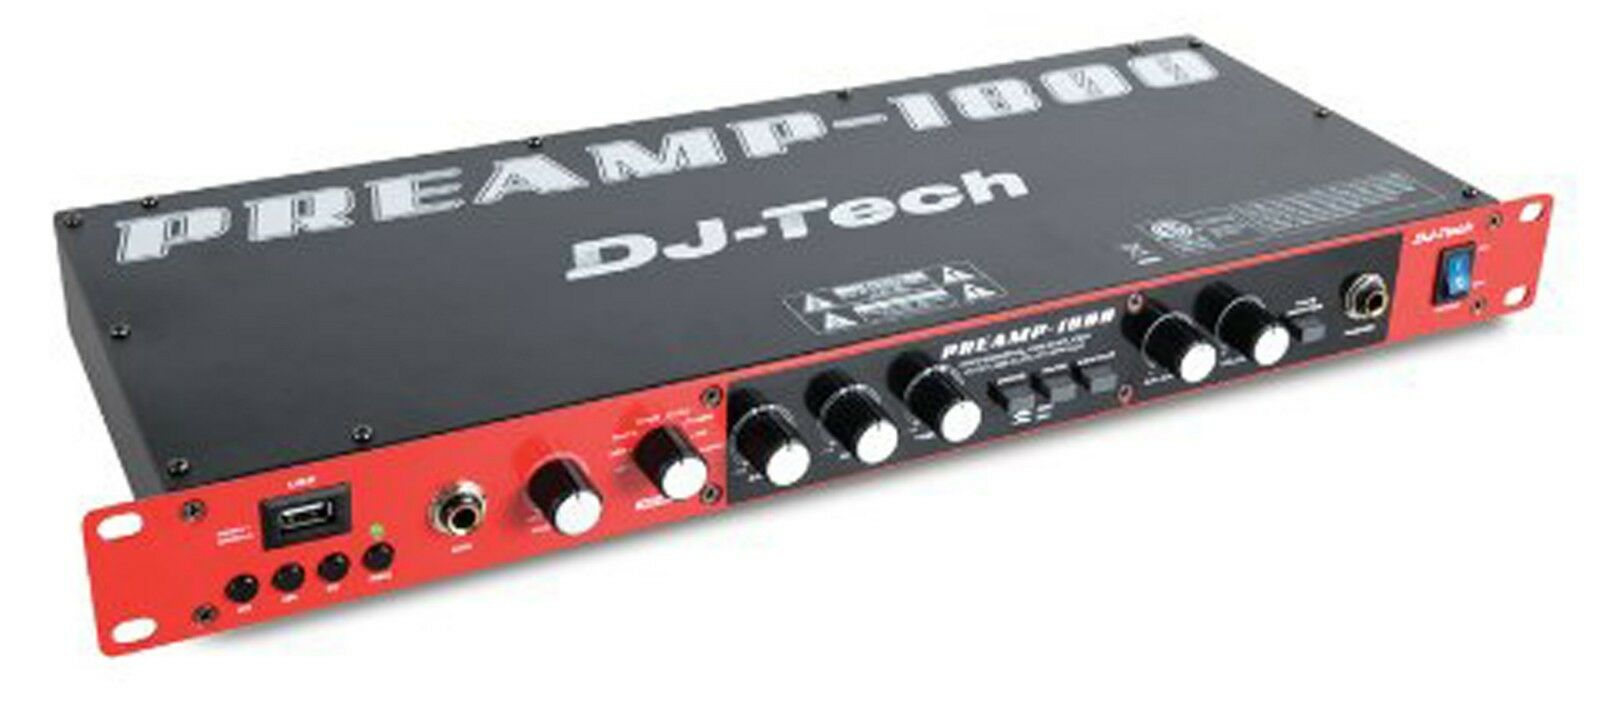 DJ Tech PREAMP 1800 8 Channel Preamplifier w// USB Audio Interface 110V-240V